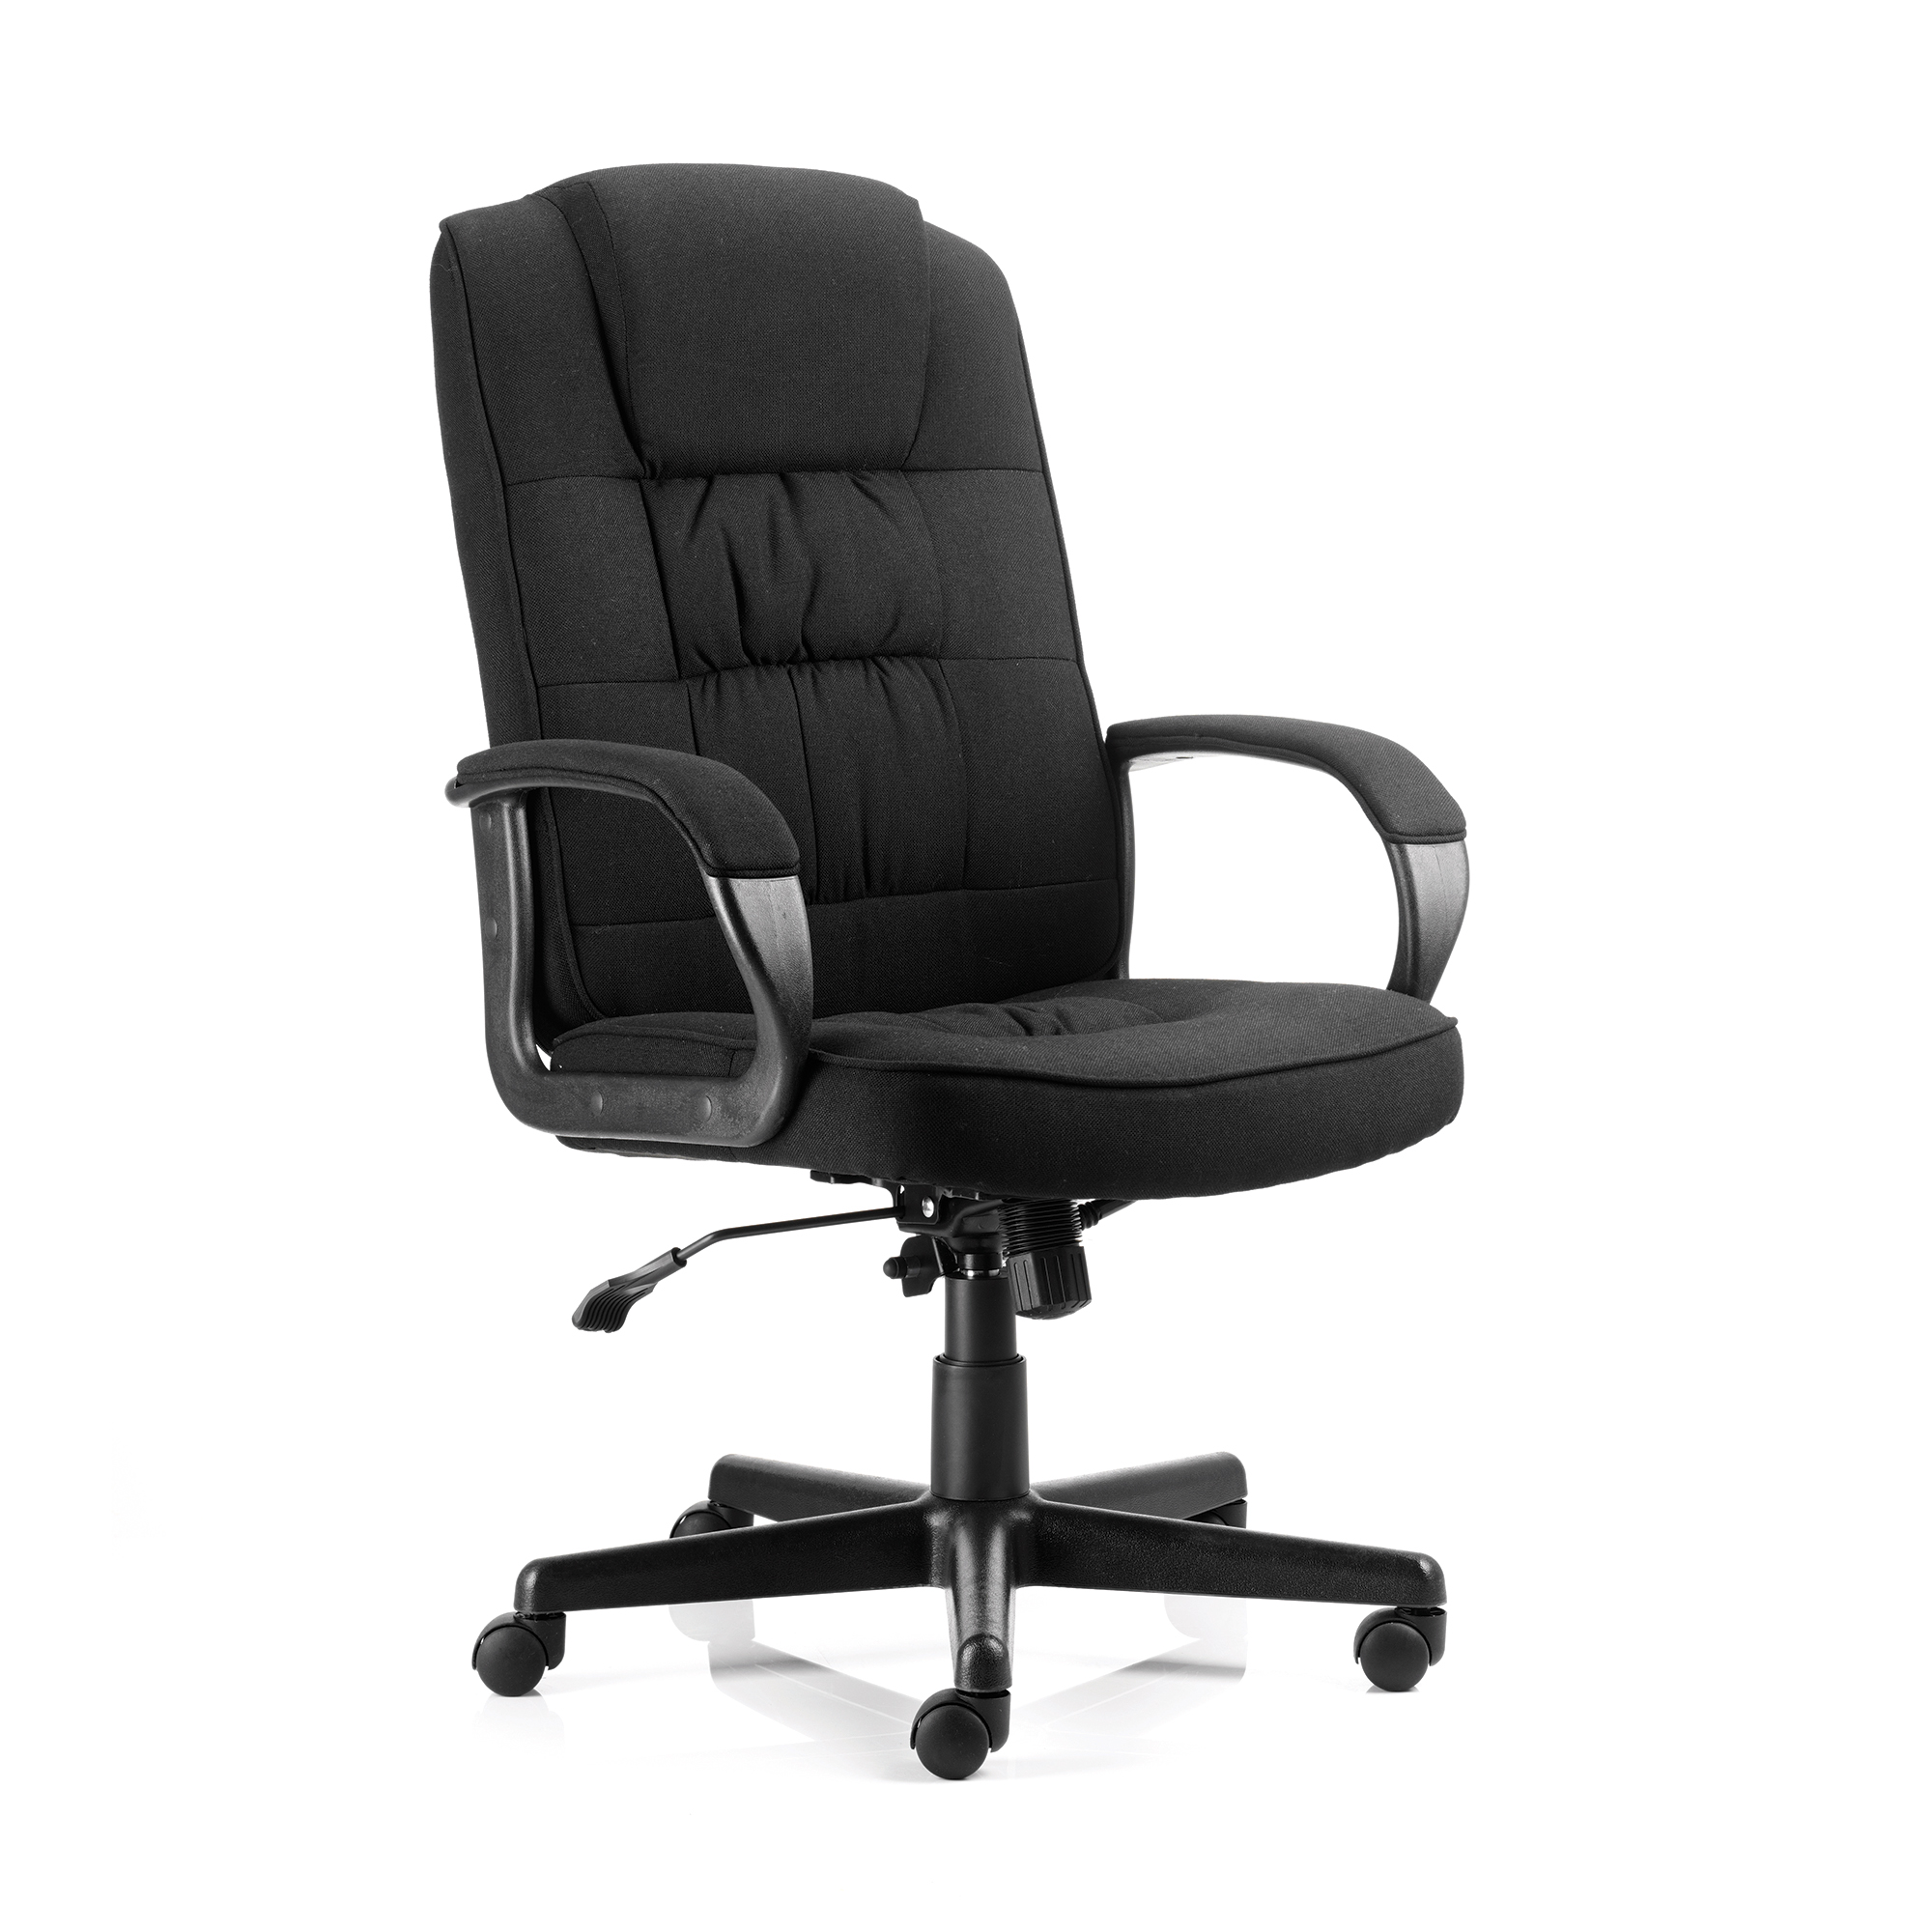 Executive seating Trexus Moore Executive Chair With Arms Fabric Black Ref EX000043